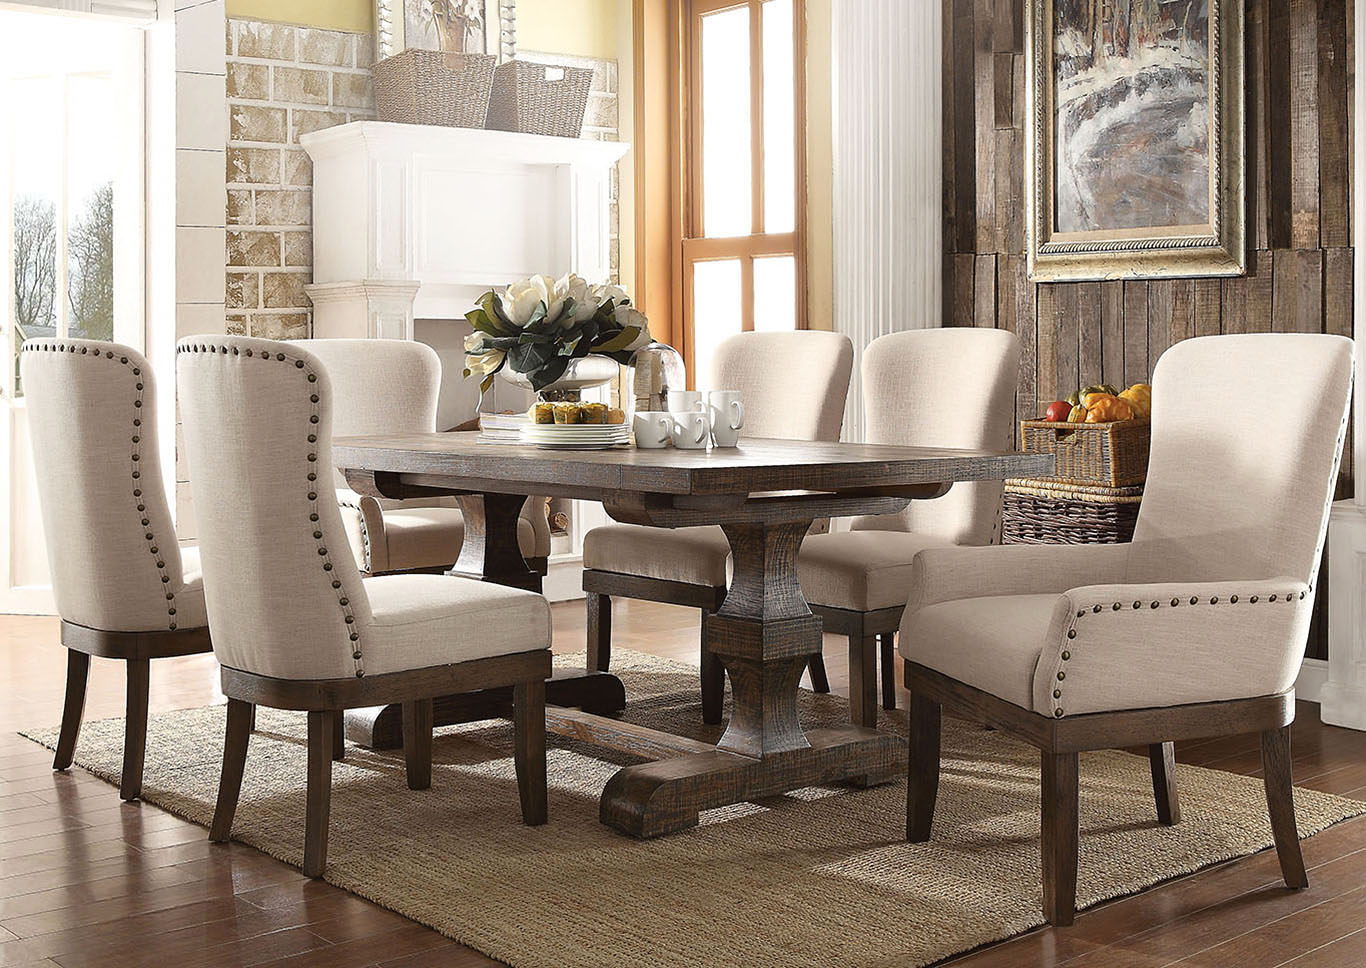 Landon Salvage Brown Dining Table,Acme